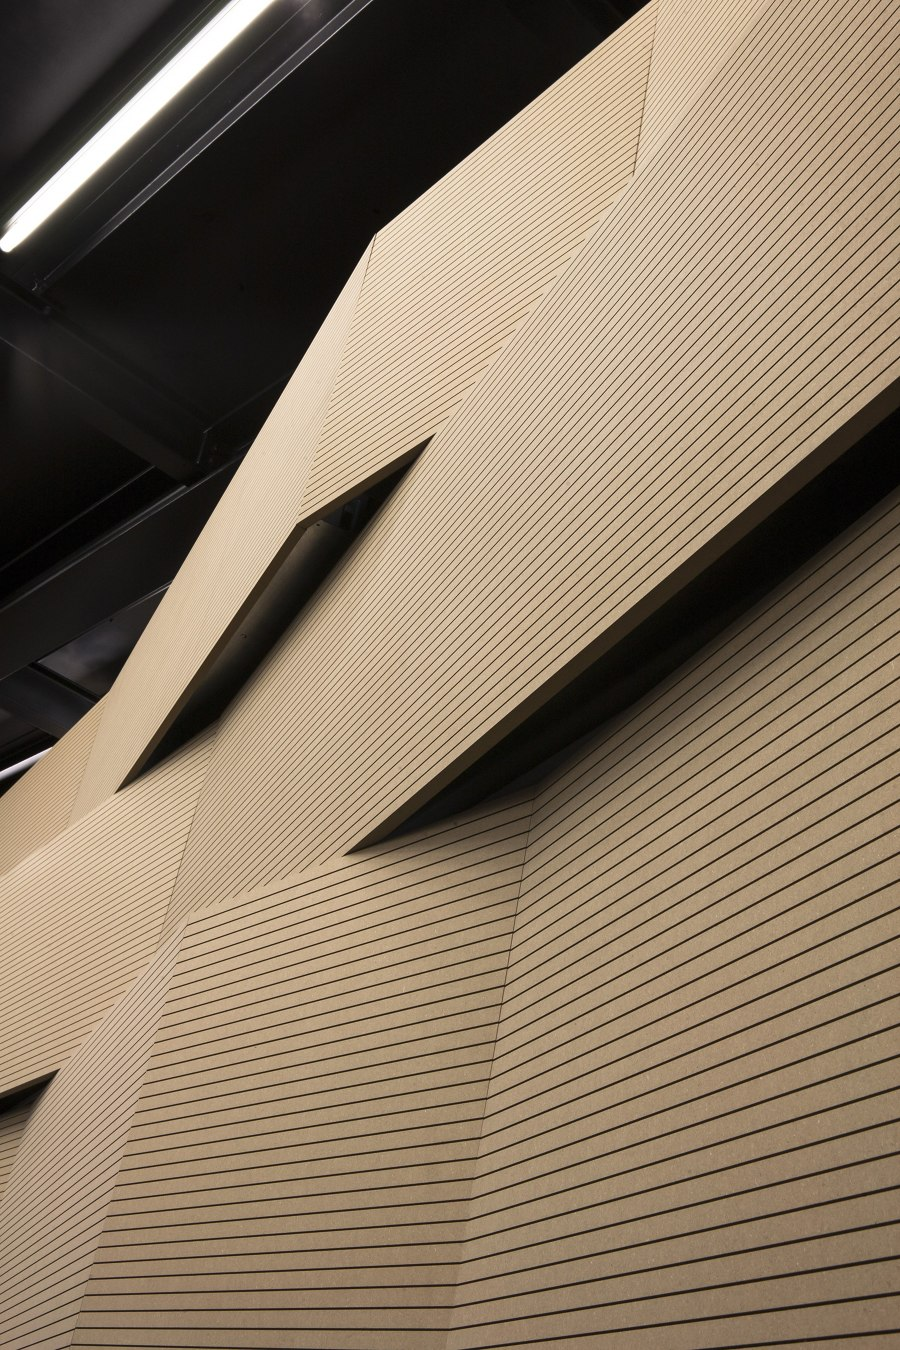 All About Acoustics | News